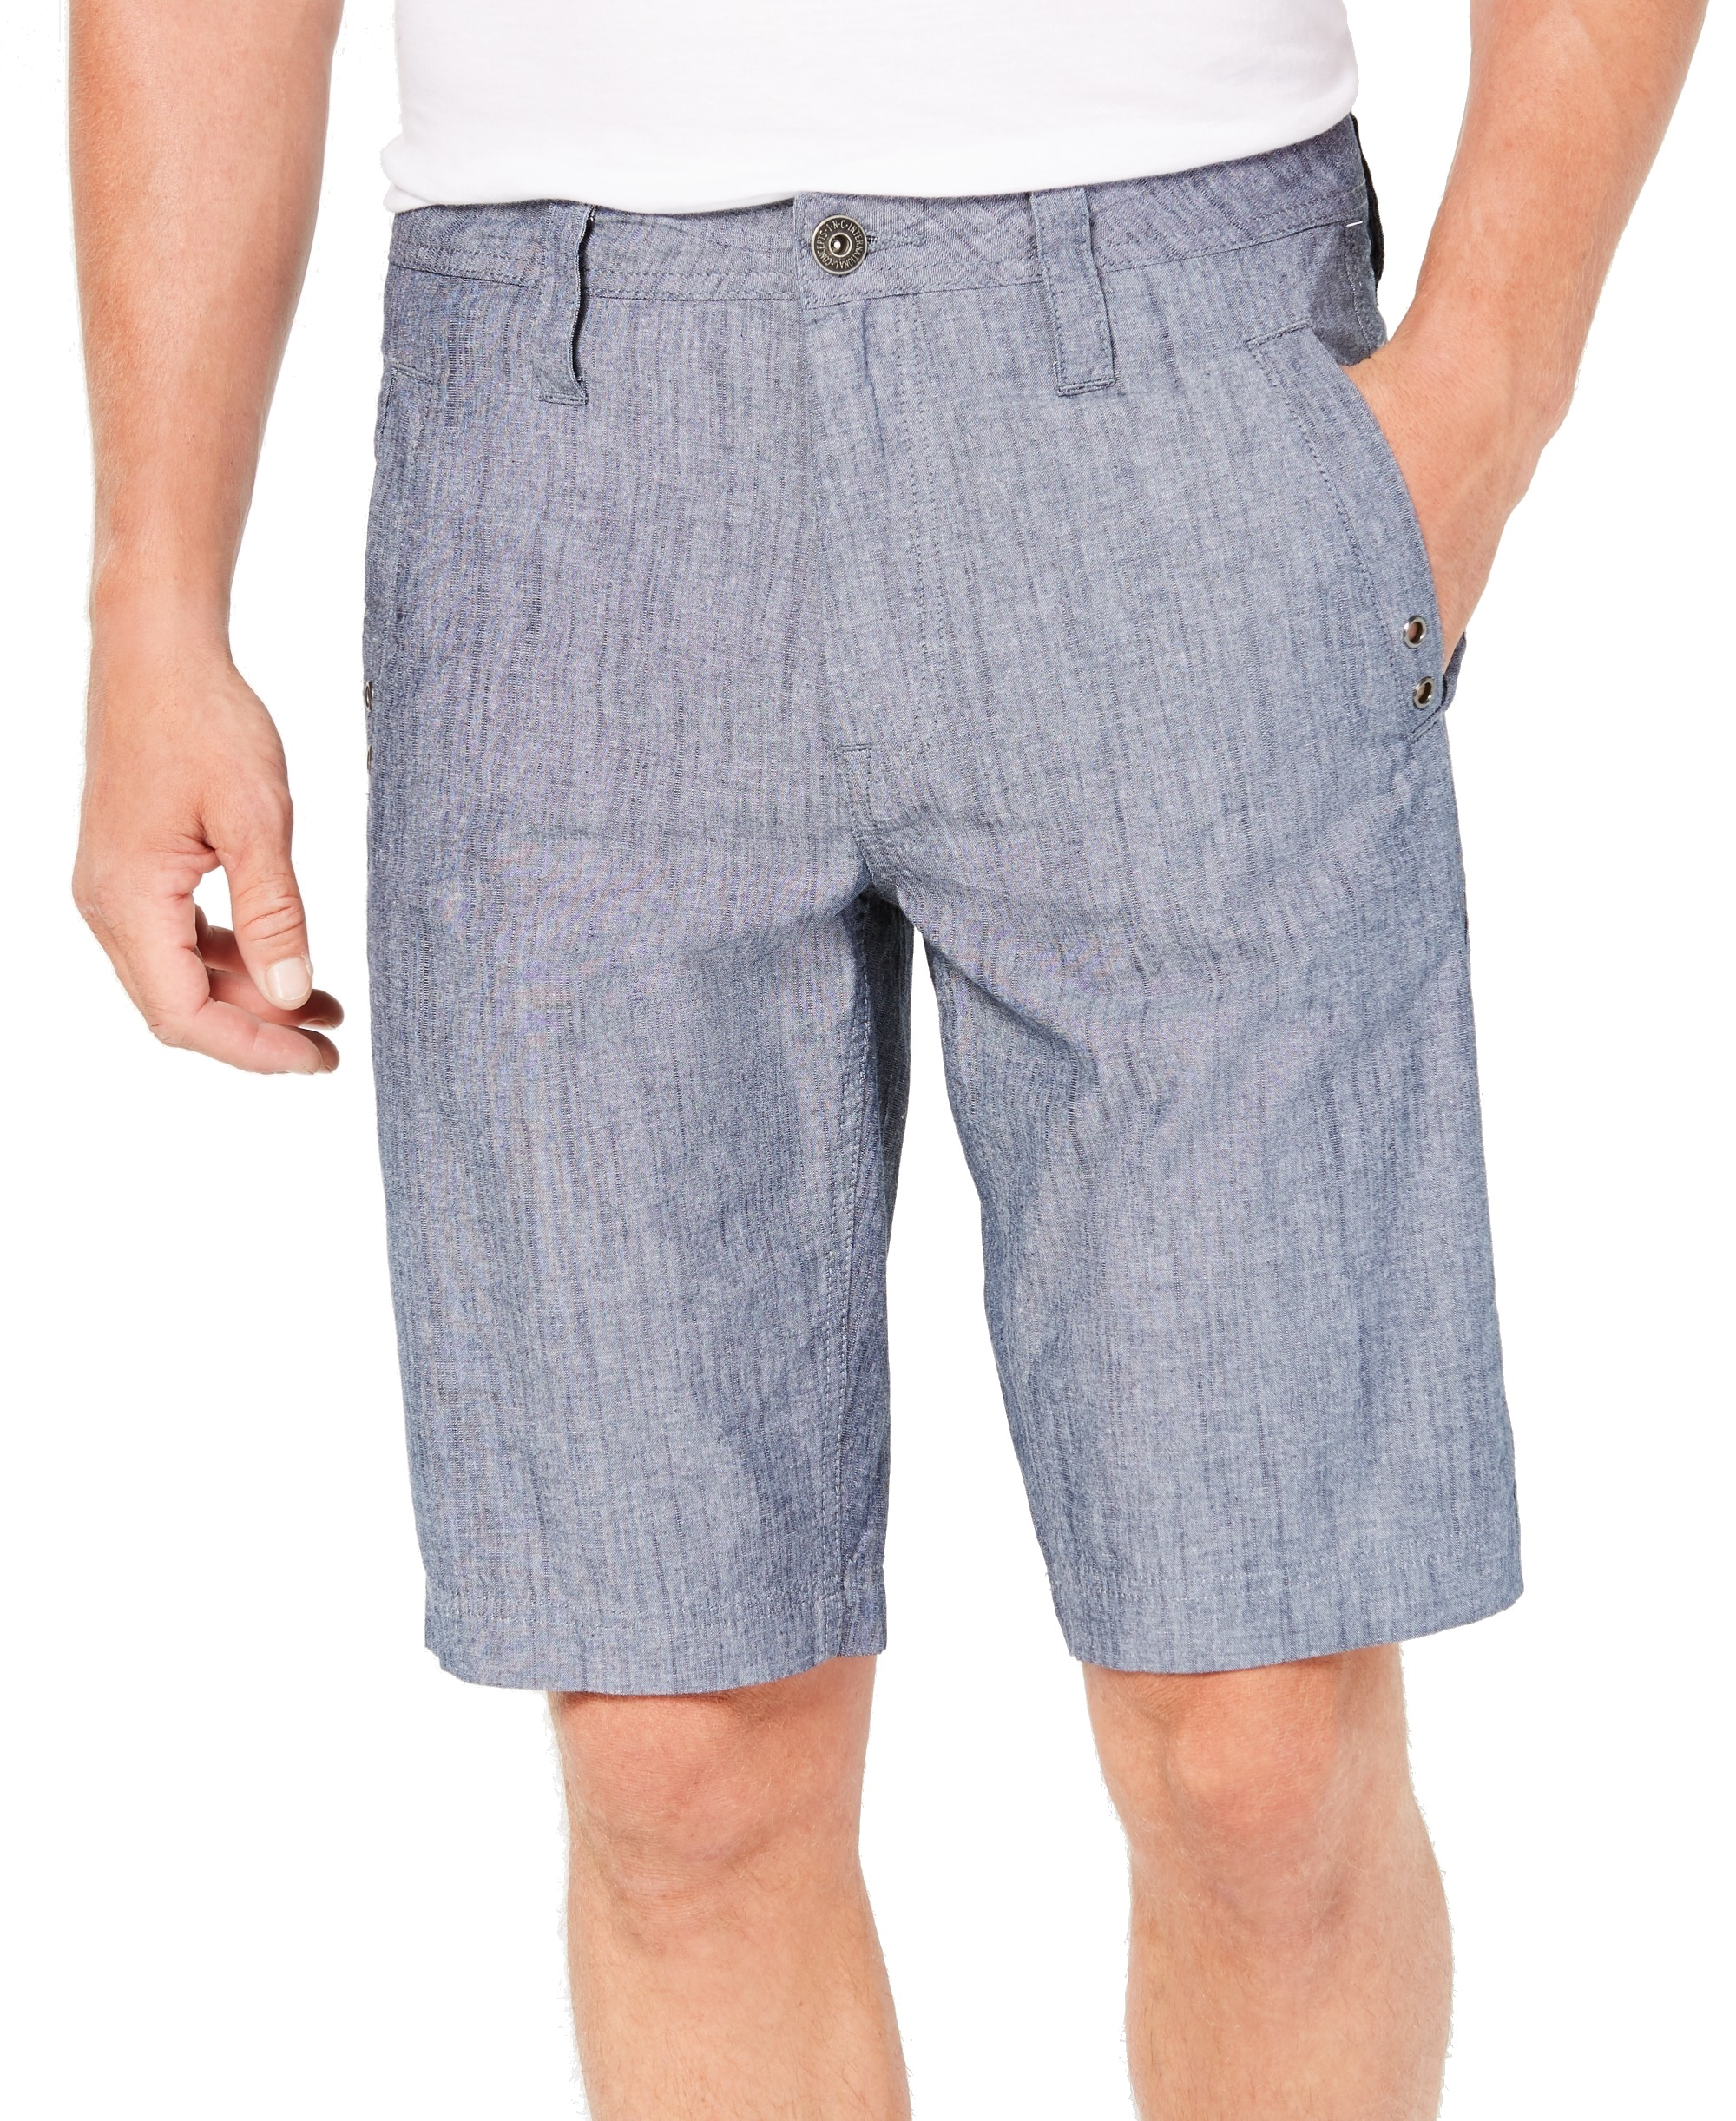 INC-NEW-Basic-Navy-Blue-Mens-Size-38-Regular-Fit-Flat-Front-Shorts